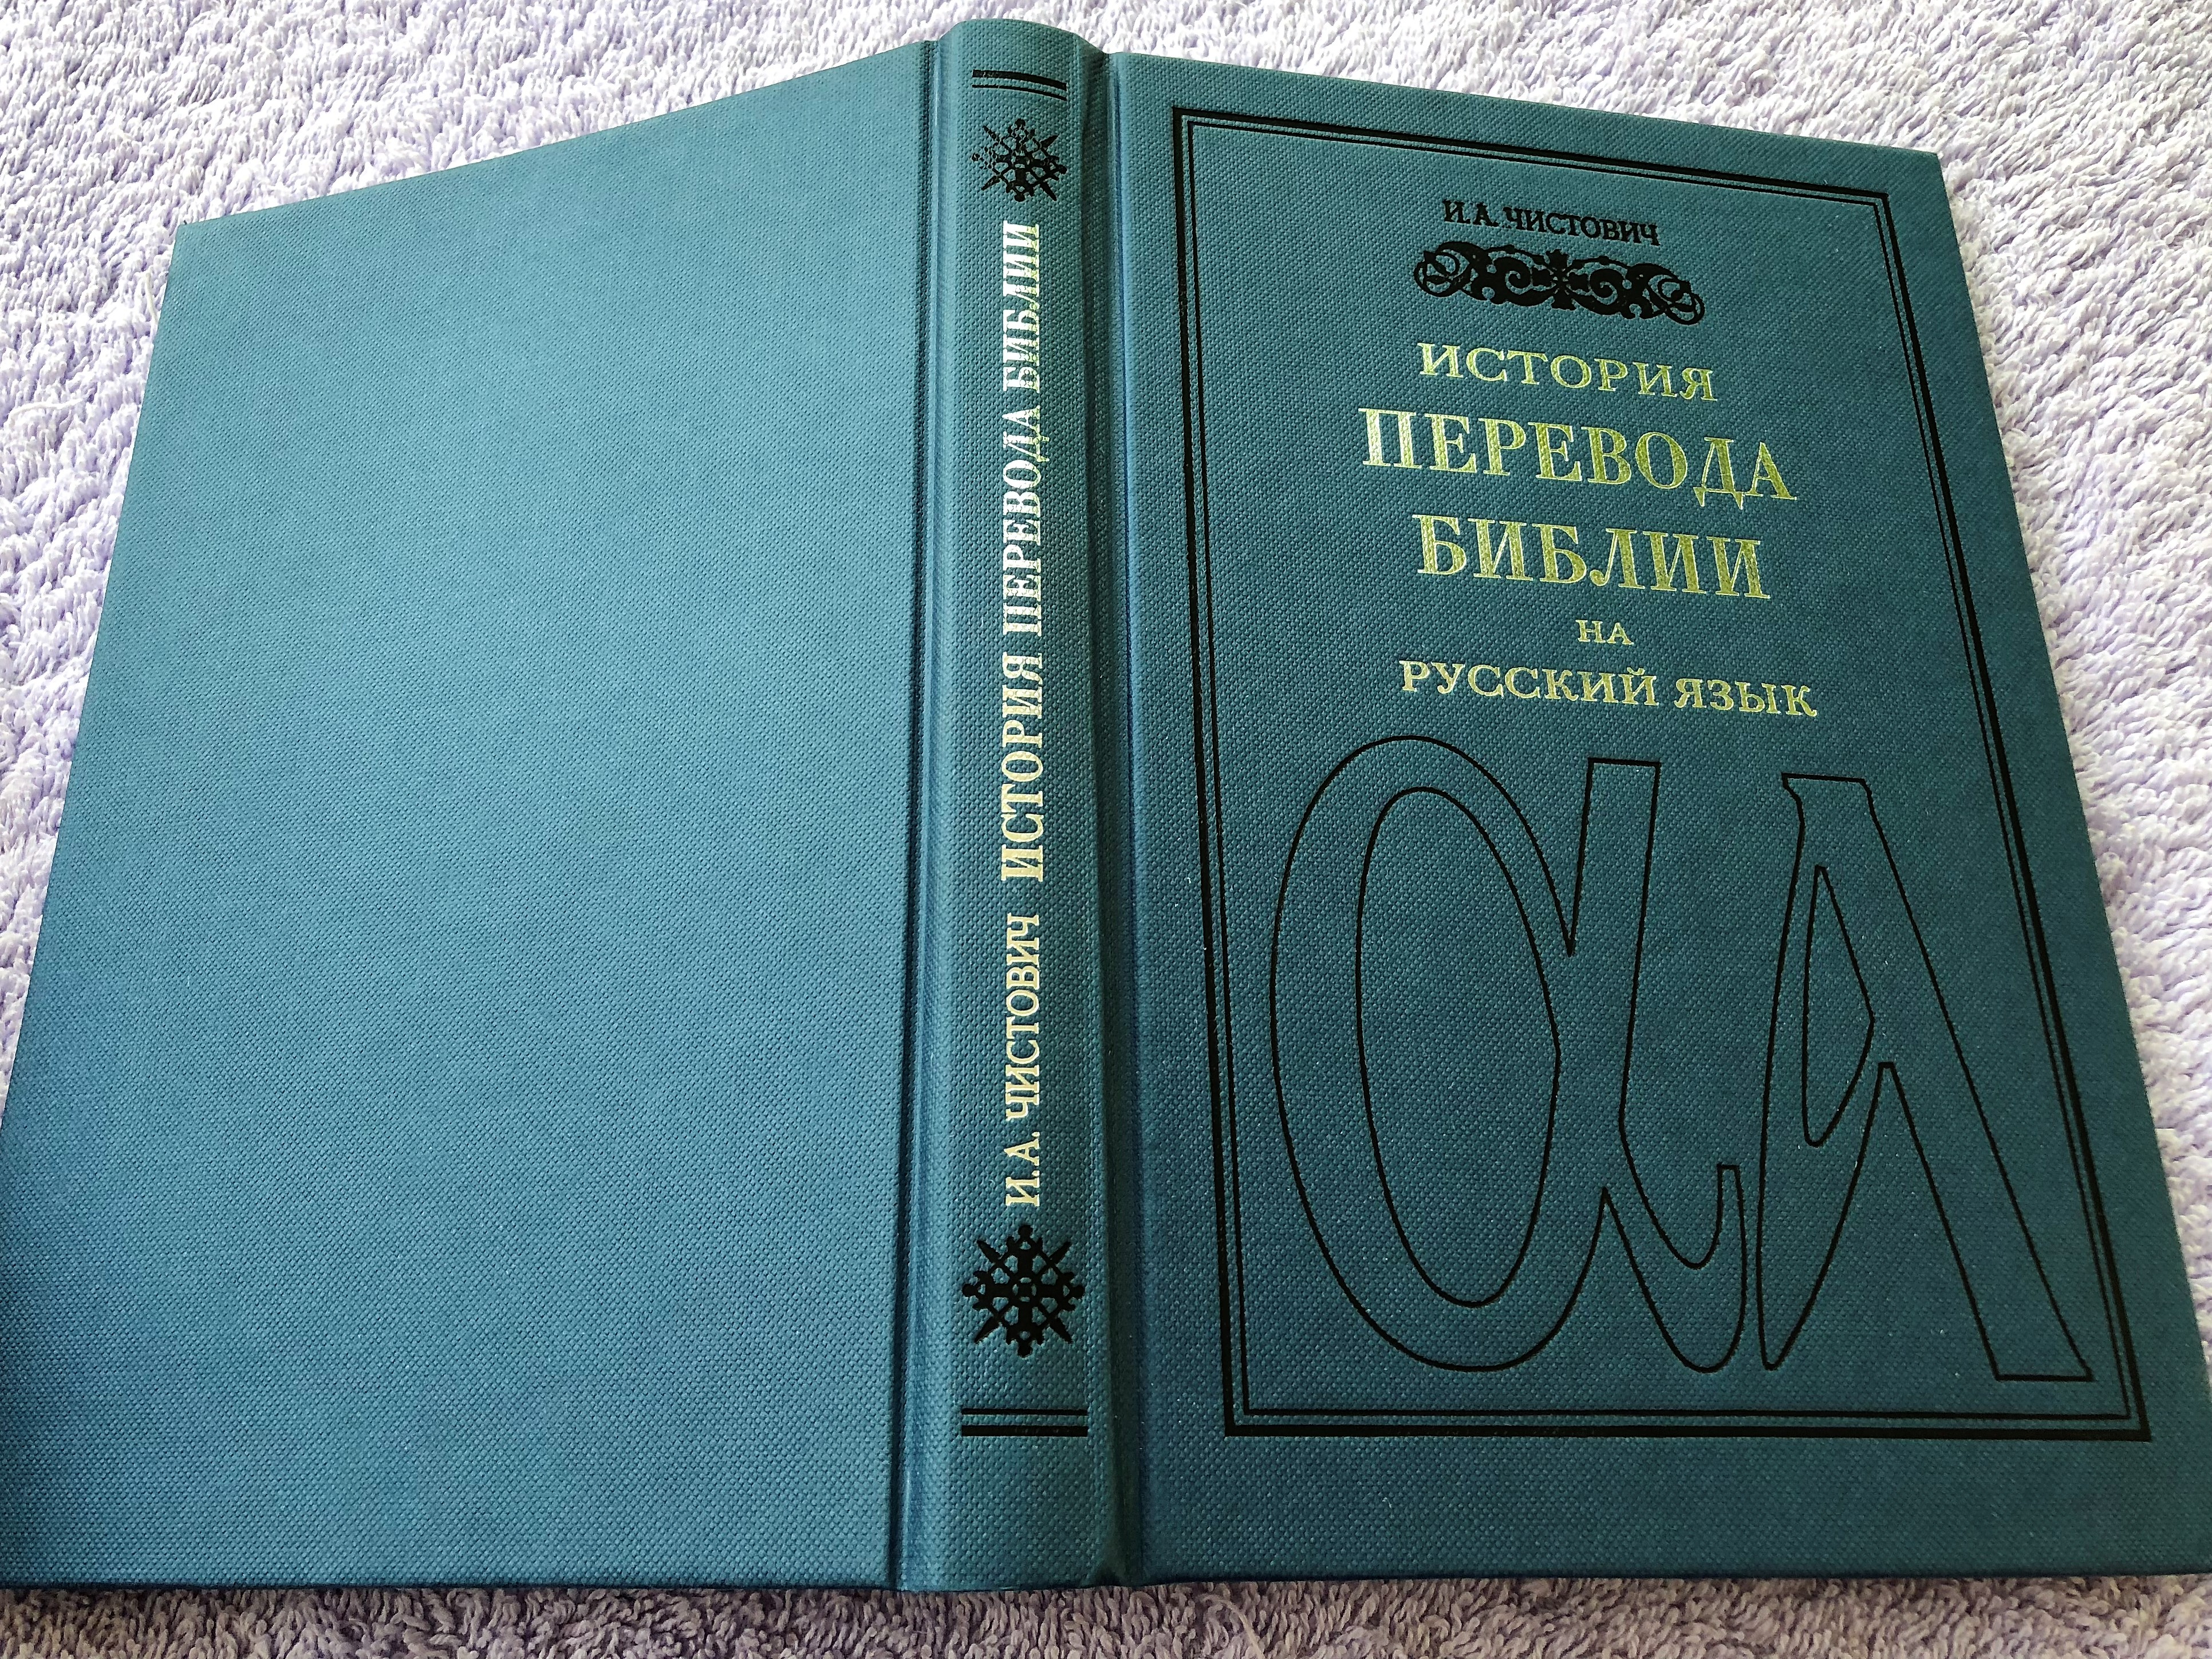 the-history-of-the-translation-of-the-bible-to-russian-language-3-.jpg